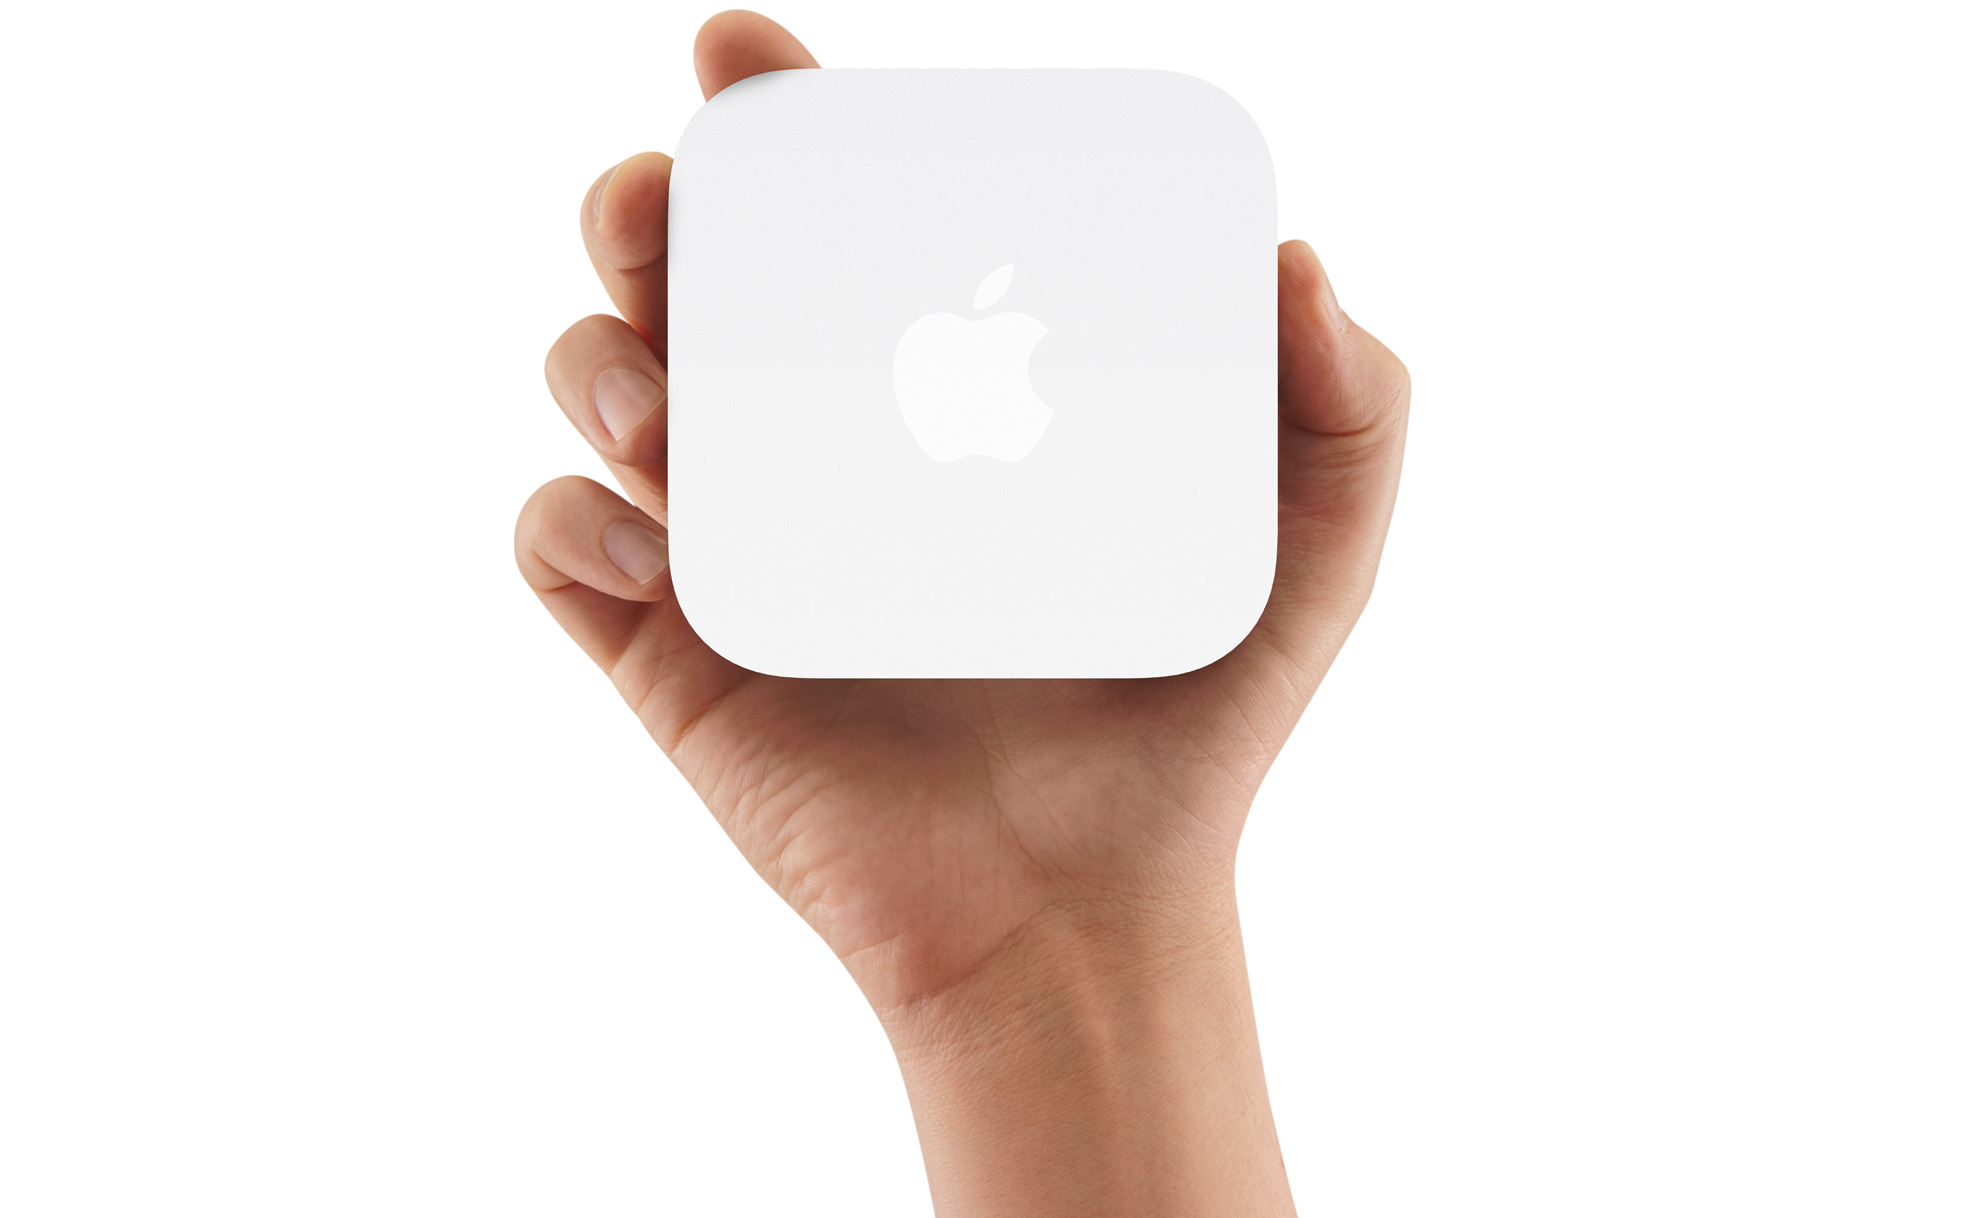 Apple AirPort Express Base Station (MC414LL/A) - Reviews of Top Apple Products - Be Cool! Look Cool! Work Smart!